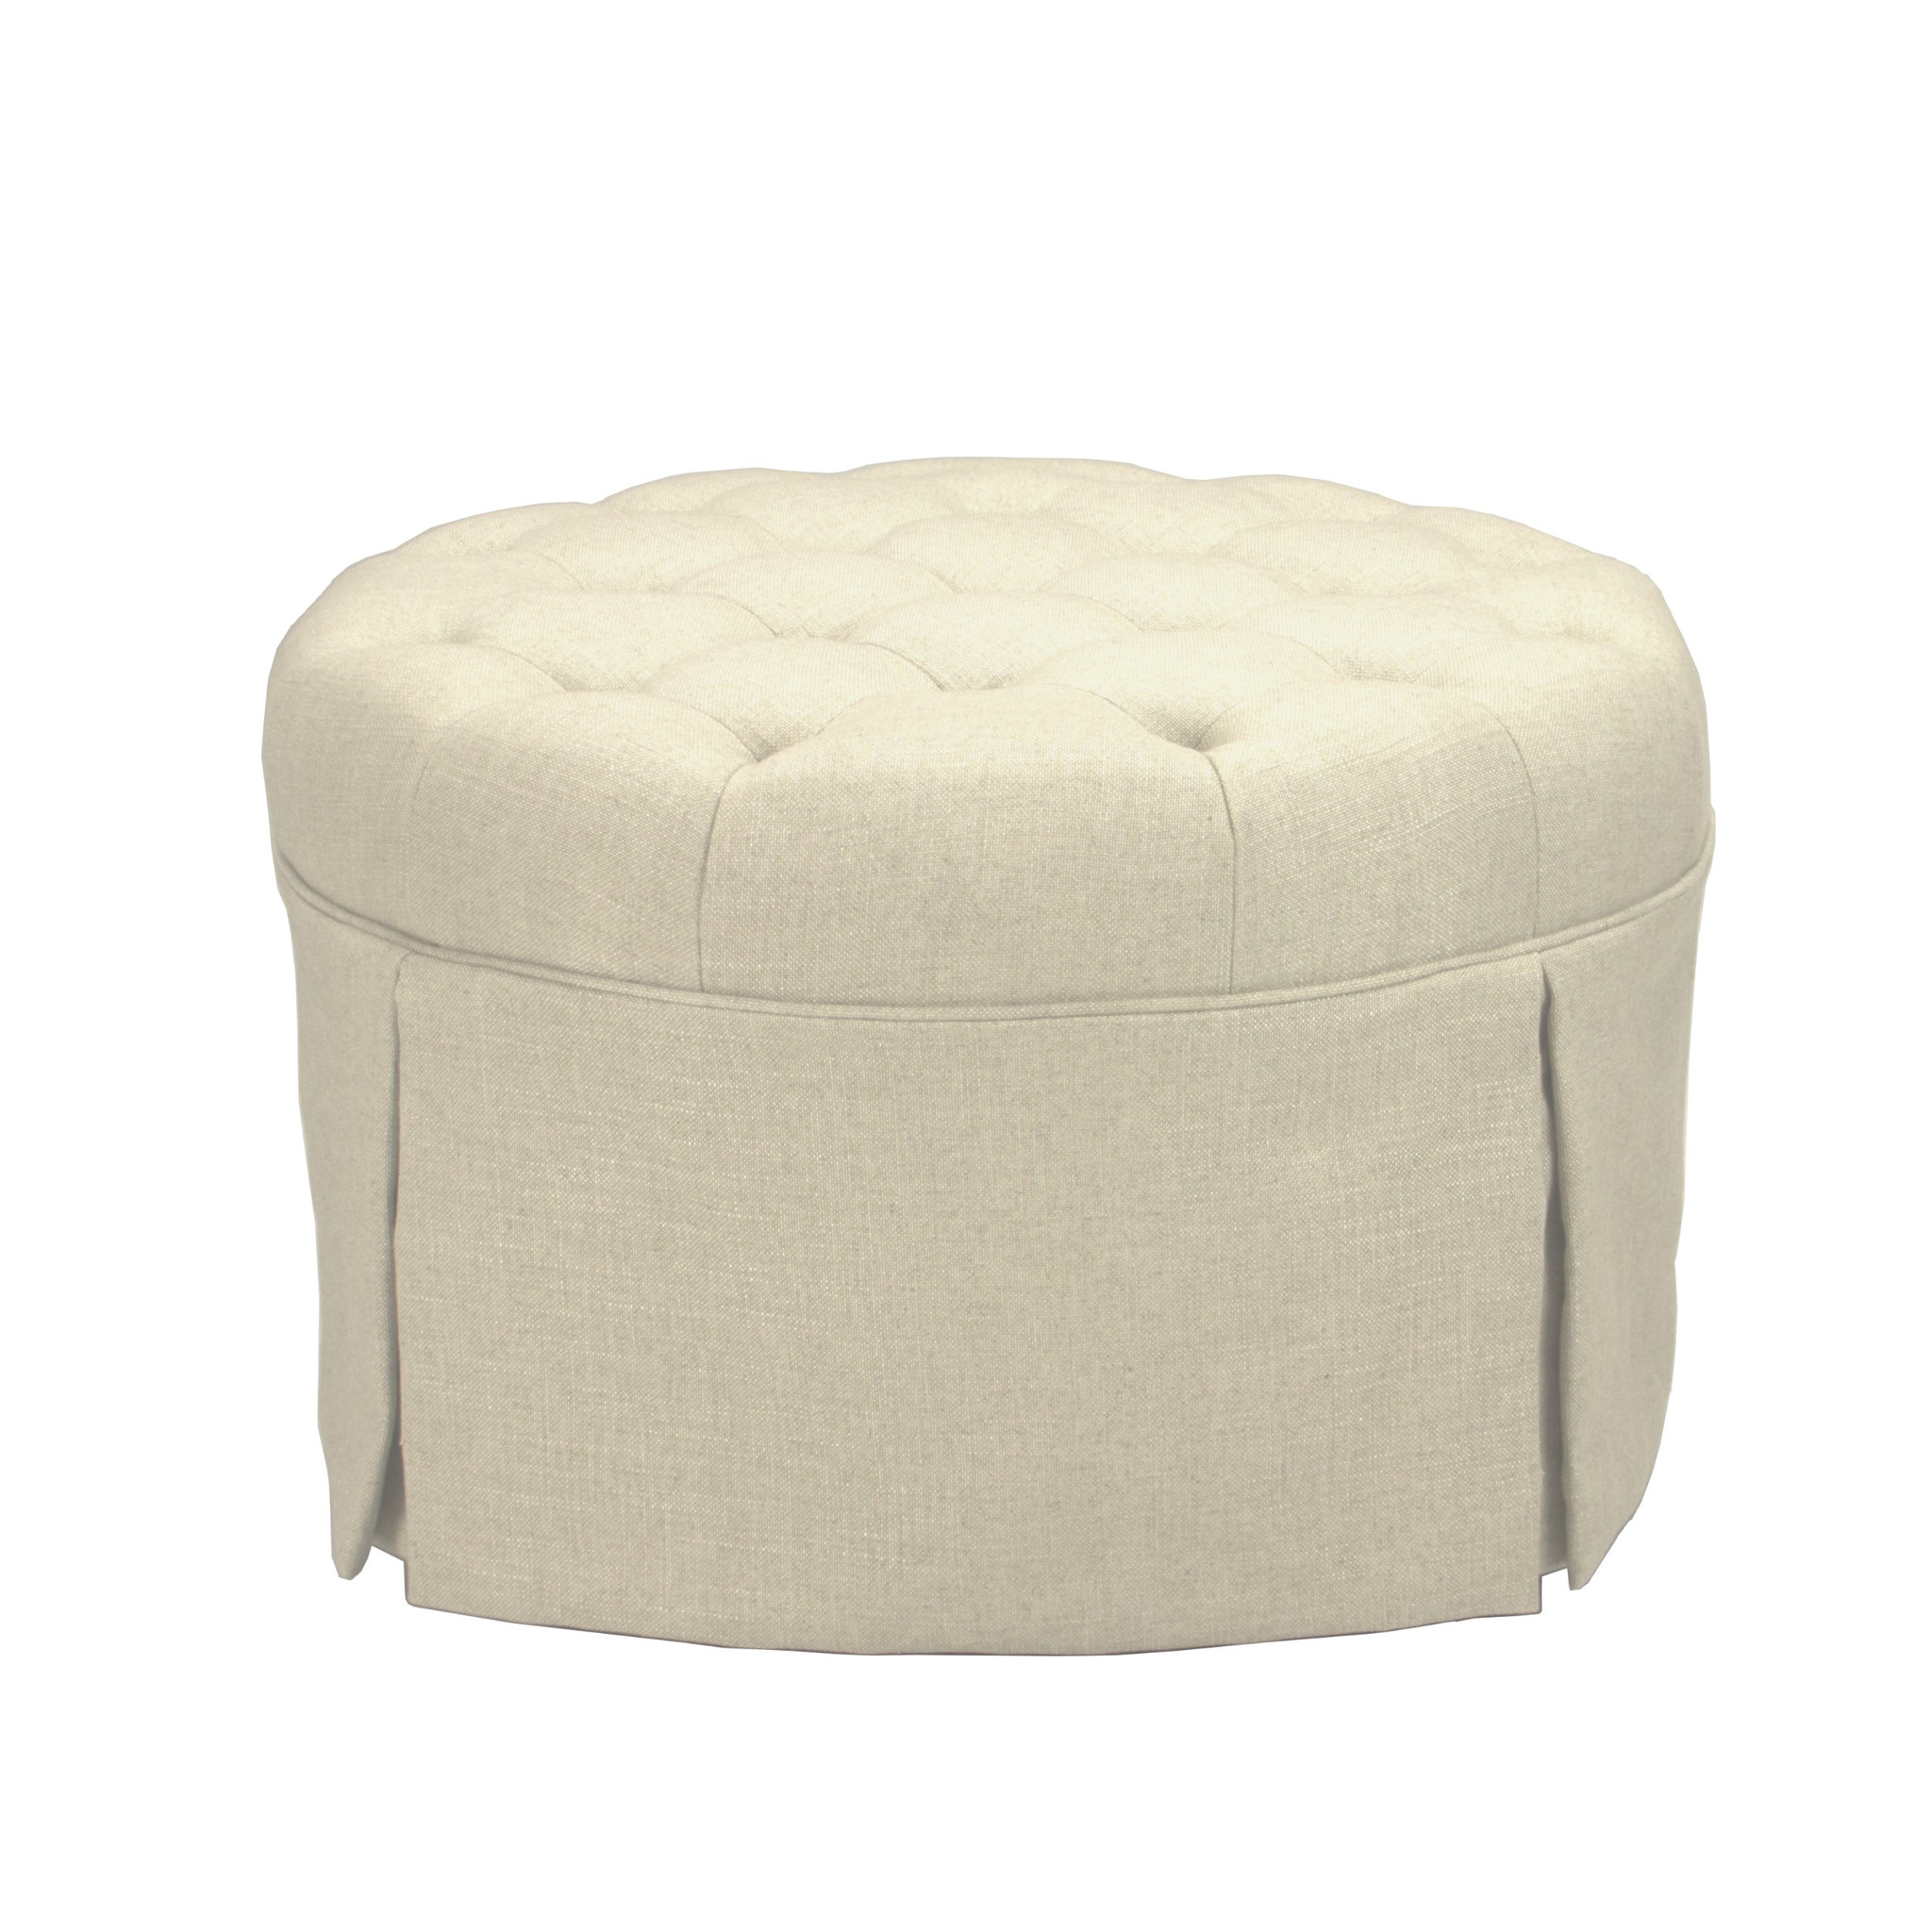 round-tufted-storage-ottoman-natural